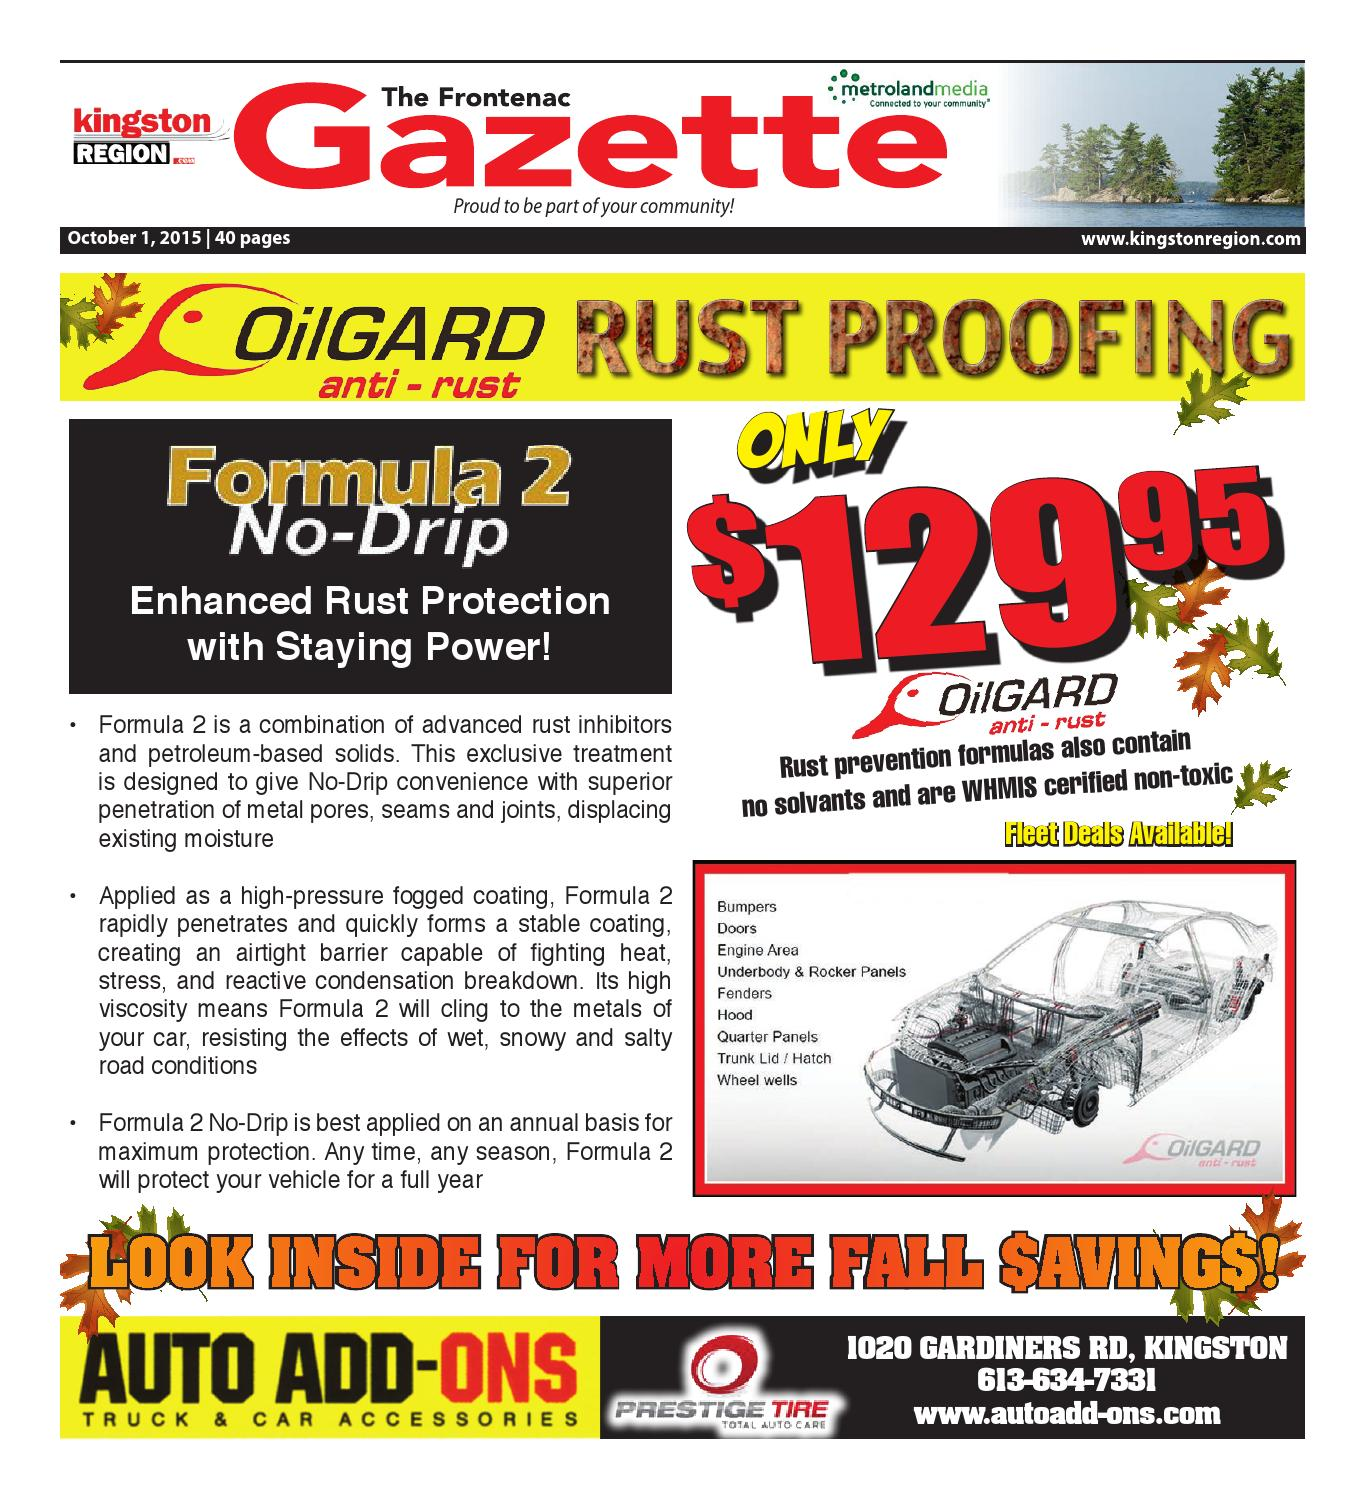 Trailer Light Wiring Harness 4 Flat 35ft To Redo Lights Frontenac100115 By Metroland East Frontenac Gazette Issuu